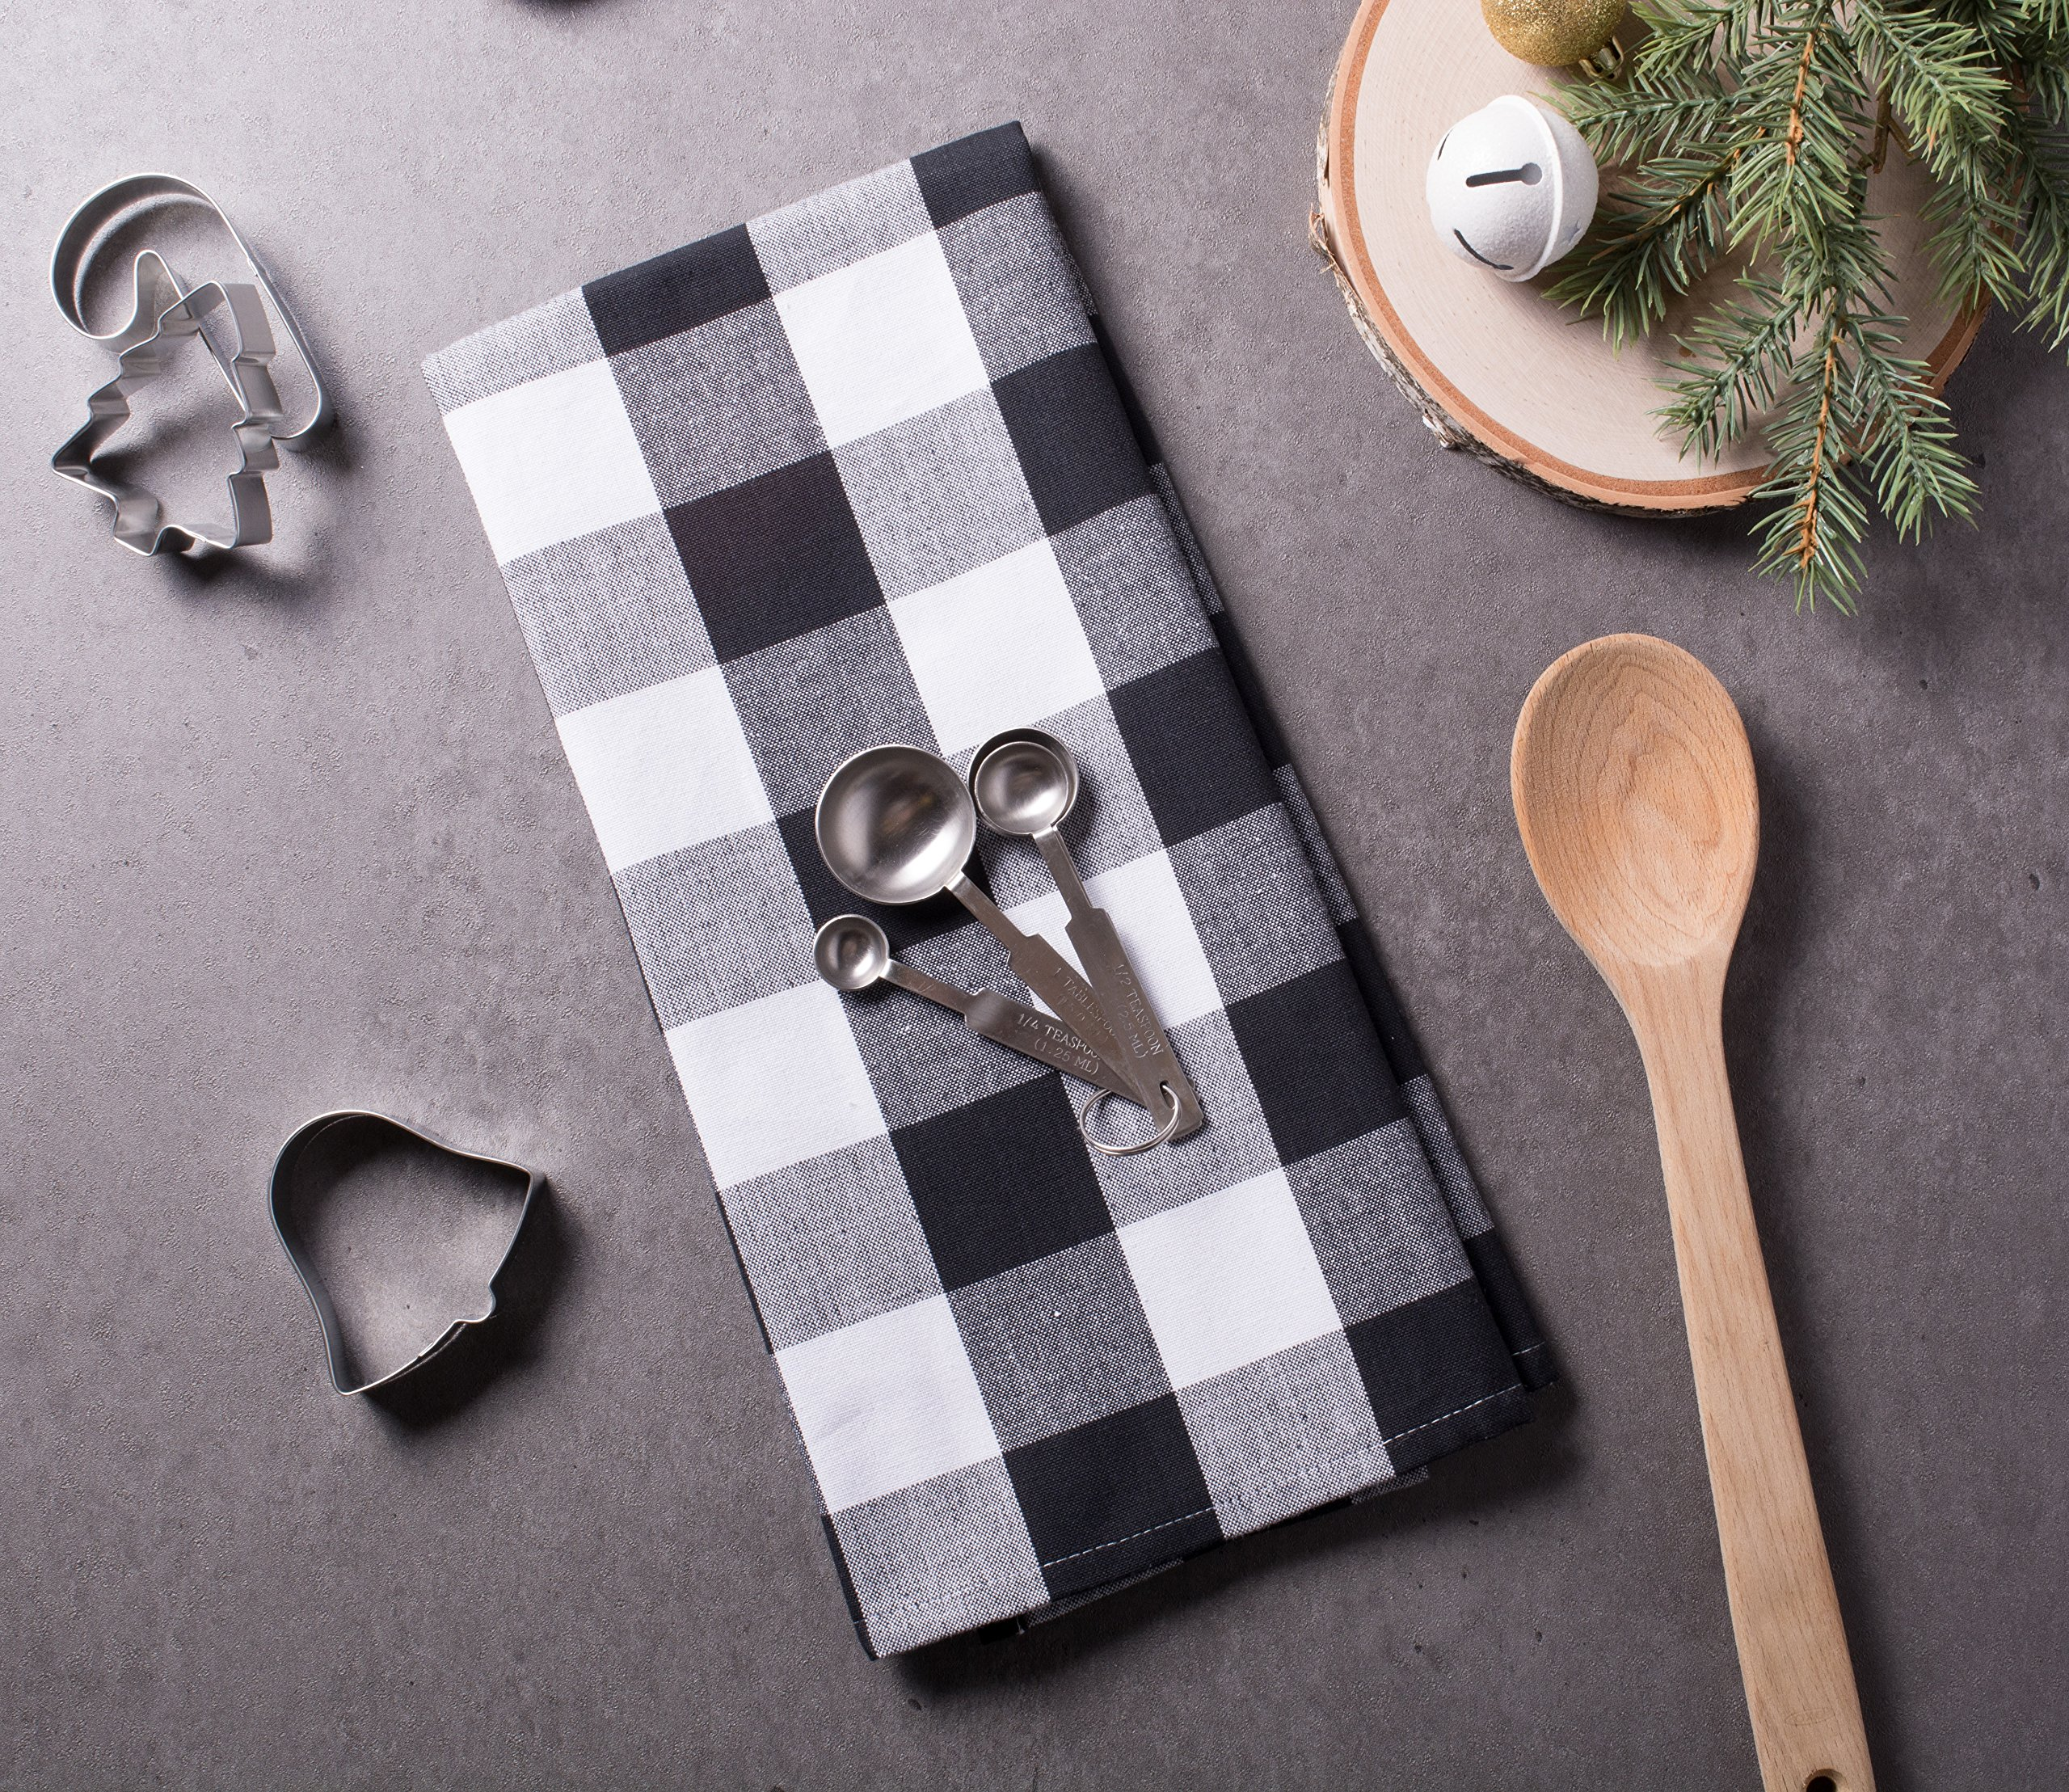 DII Cotton Buffalo Check Plaid Dish Towels, (20x30, Set of 3) Monogrammable Oversized Kitchen Towels for Drying, Cleaning, Cooking, Baking - Black & White by DII (Image #4)